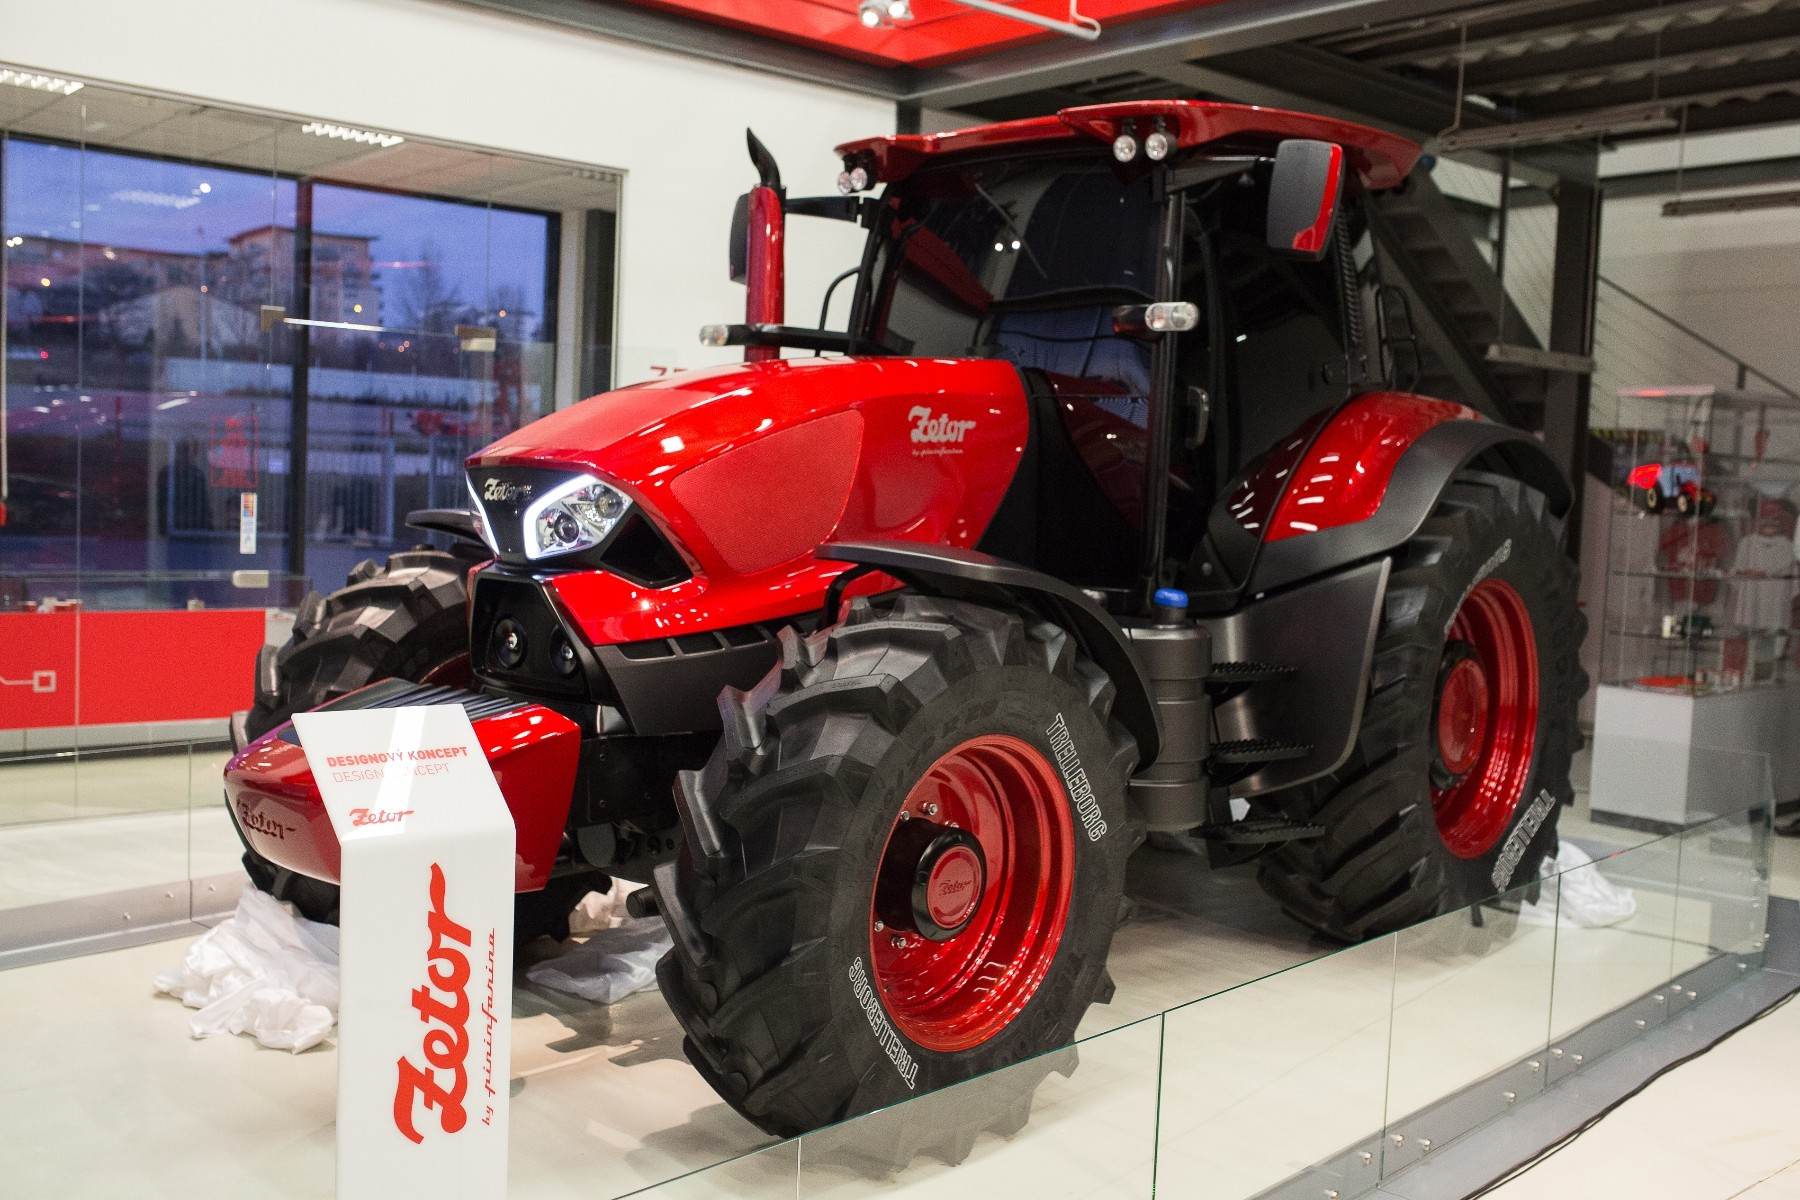 65 together with Past Present And Future All Present Zetor Brand At further 2001ducati996 also Projecttruck as well Showitemimage. on complete engine